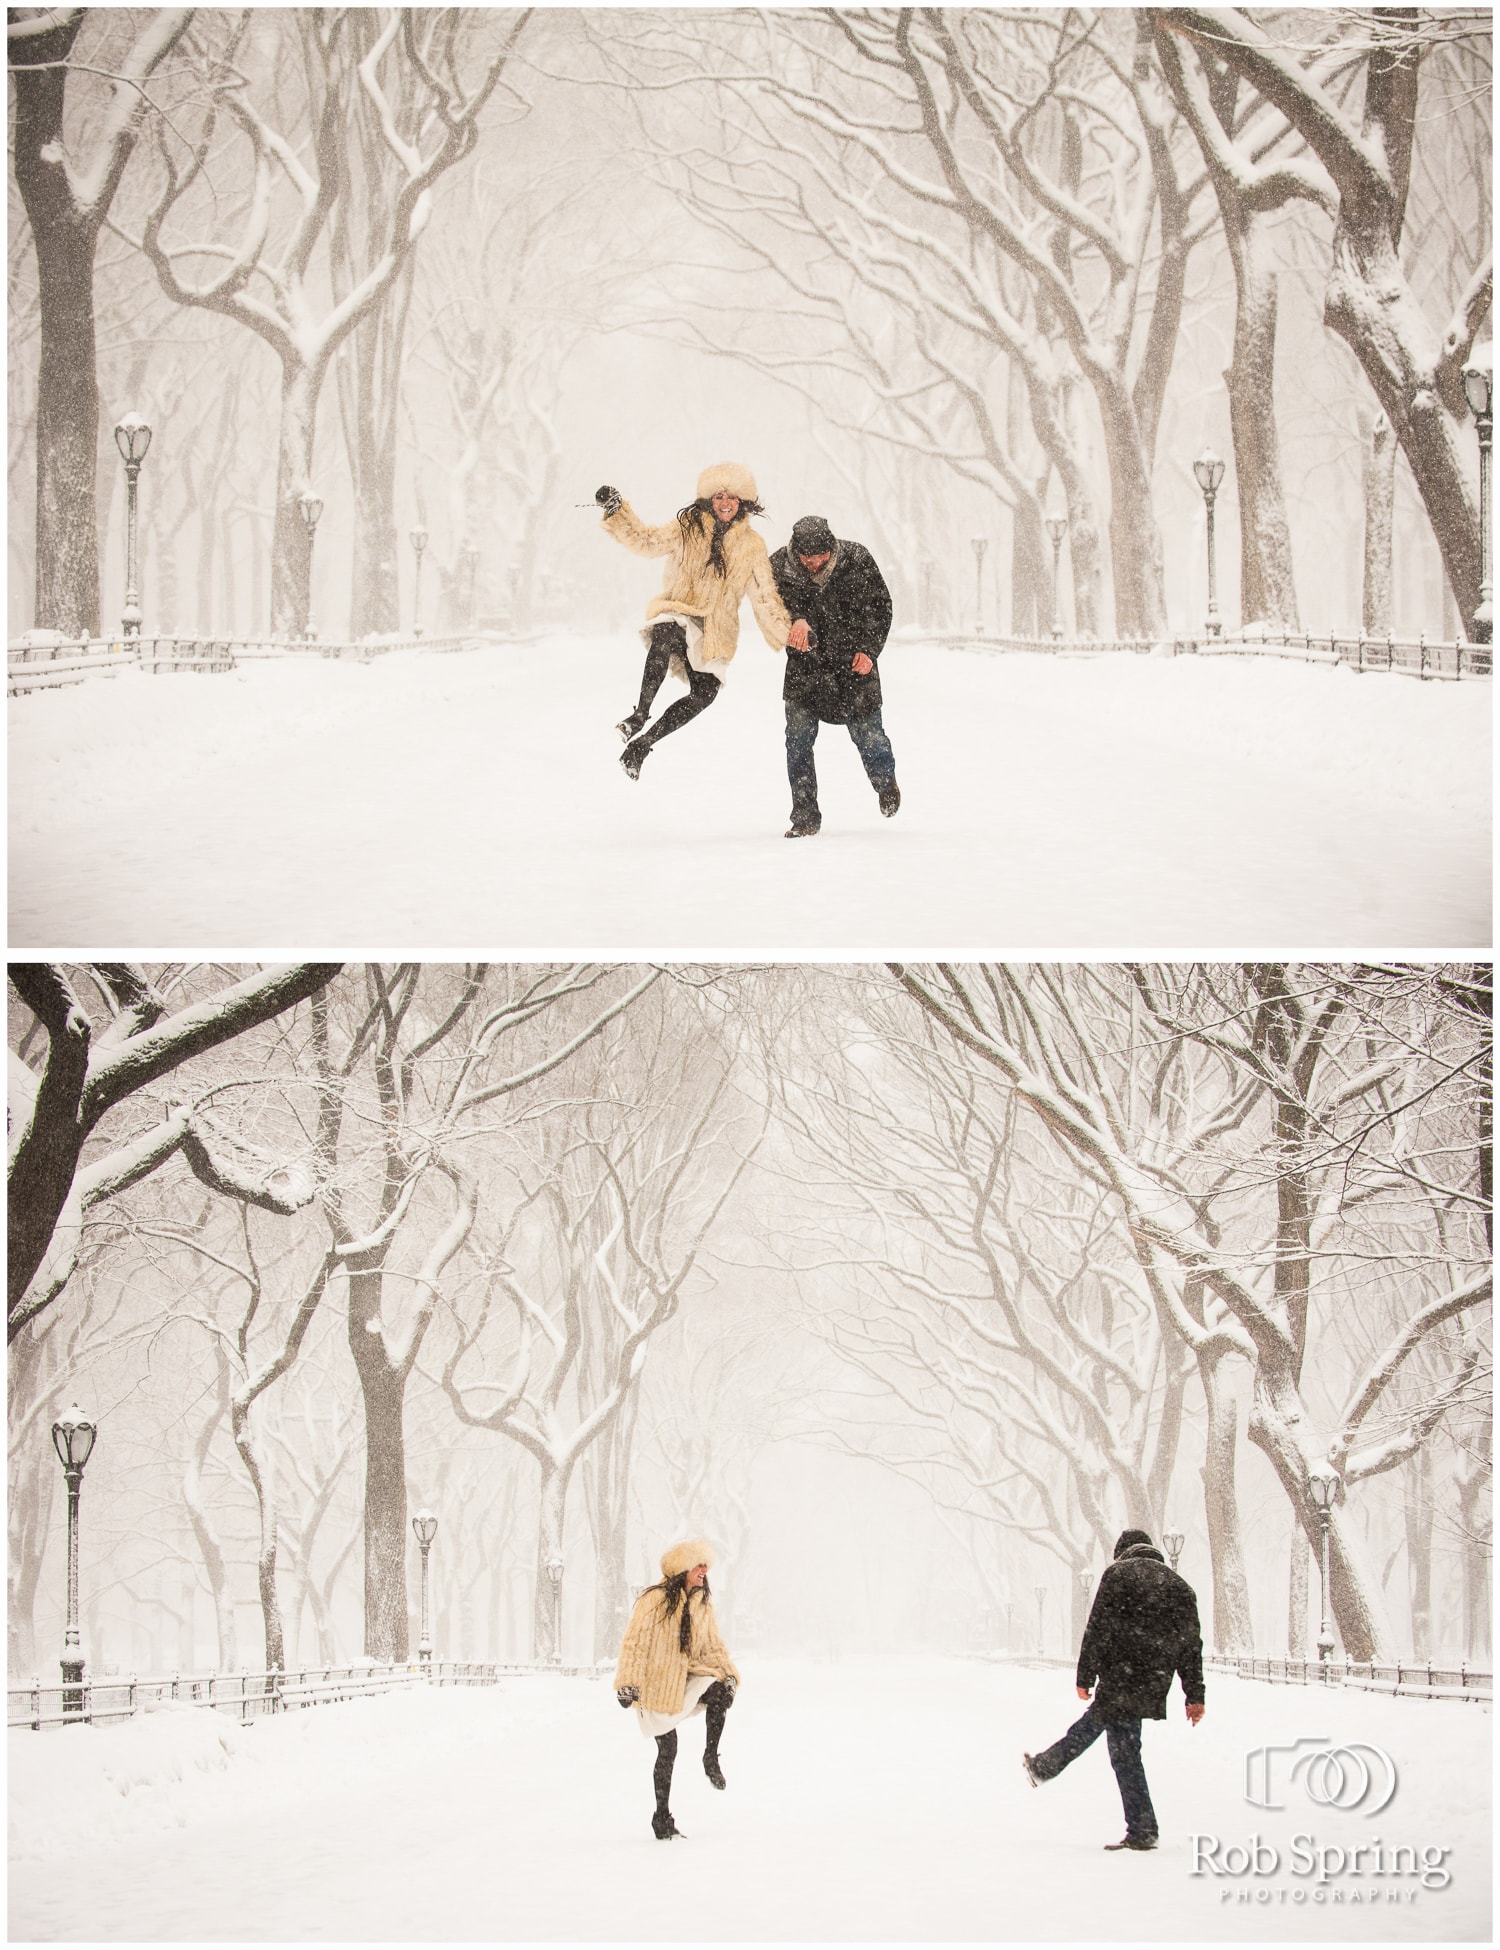 Central Park Engagement Session during blizzard